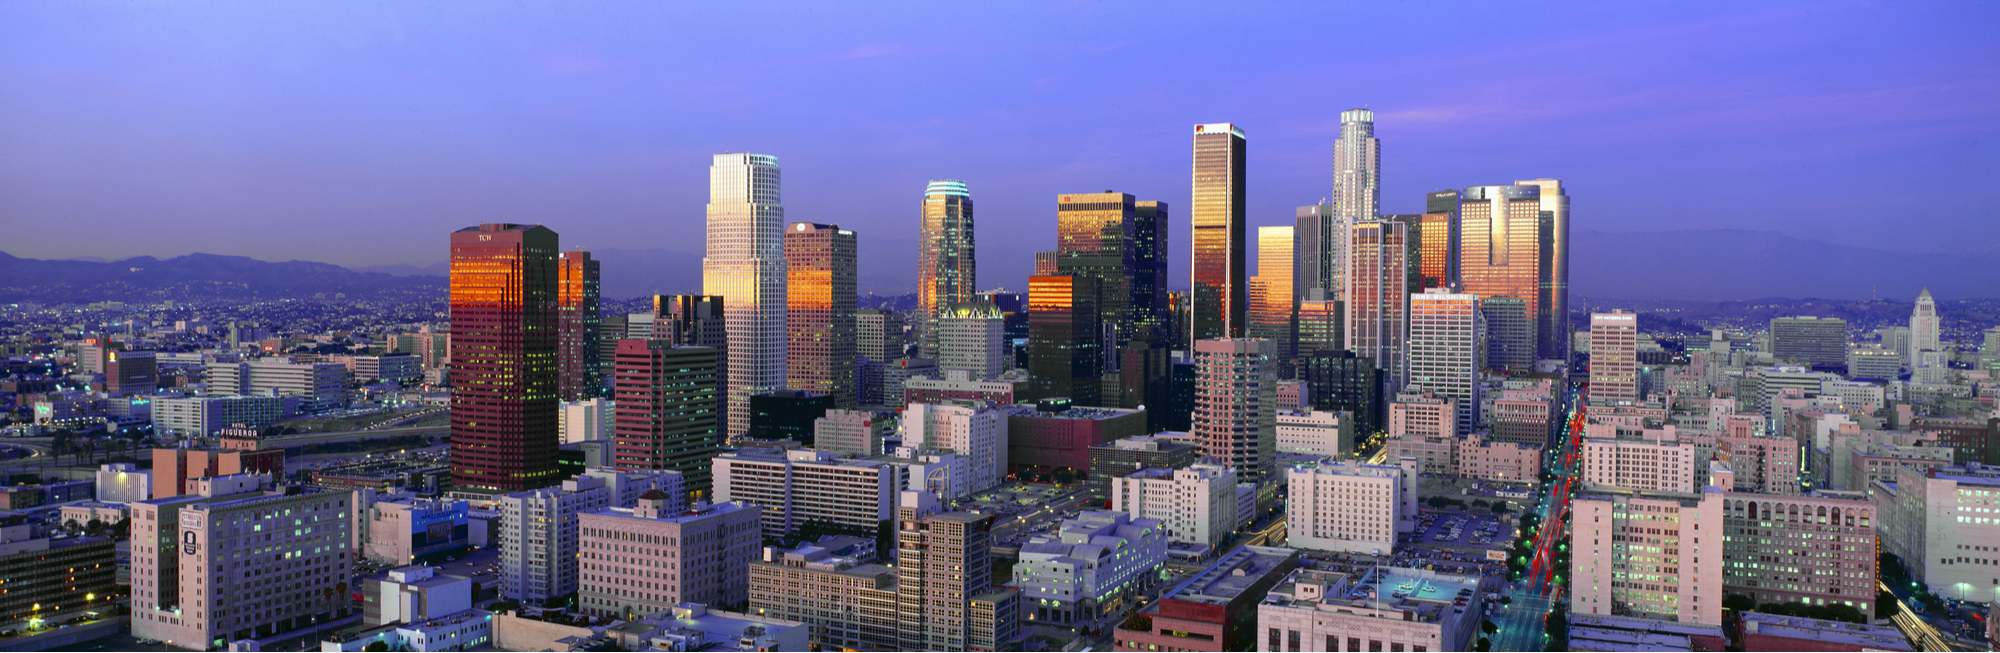 Los Angeles Capital Markets